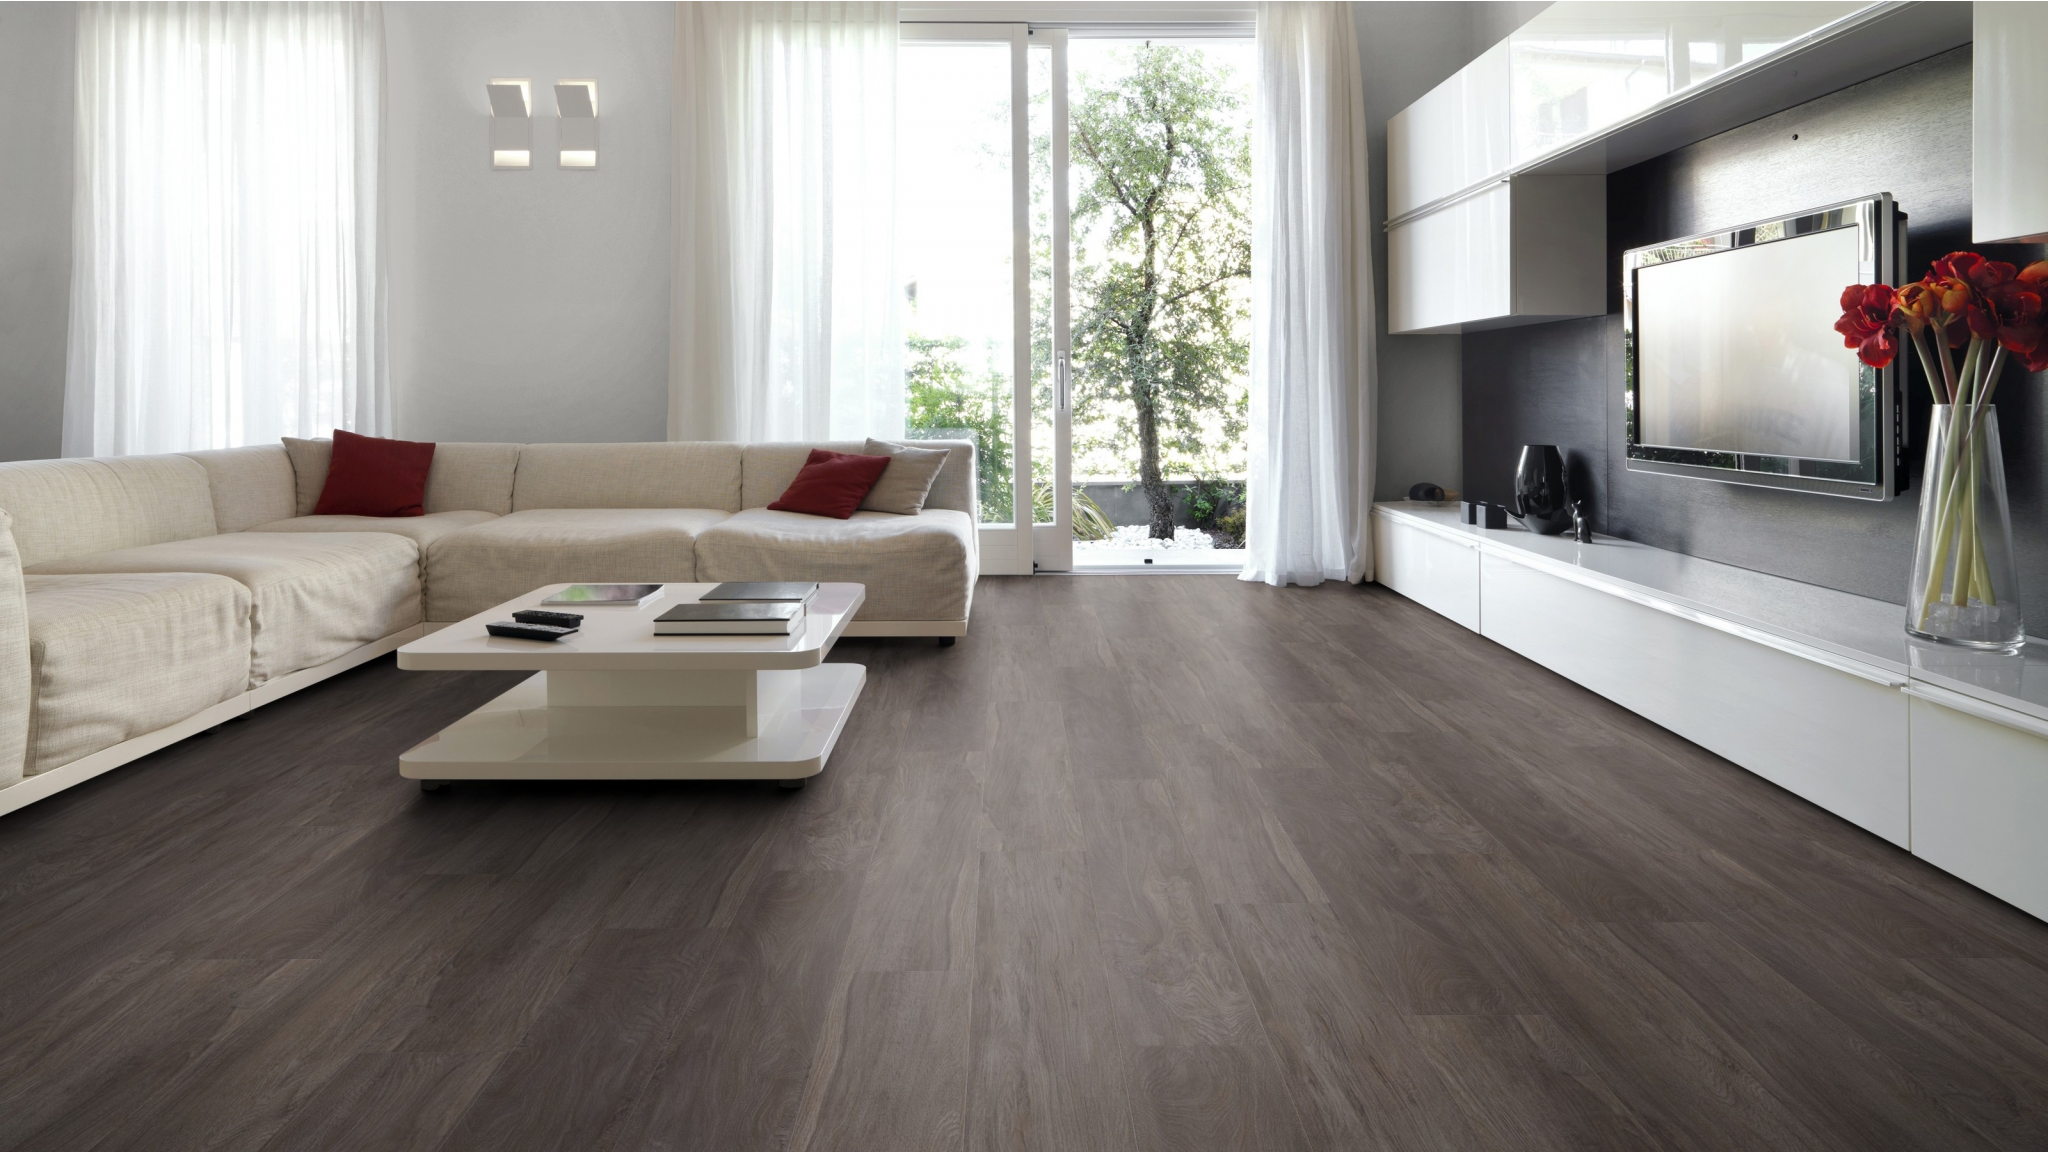 English Oak Epping Oak PVC vloer mFLOR 70597 - Gratis mFLOR PVC Stalen